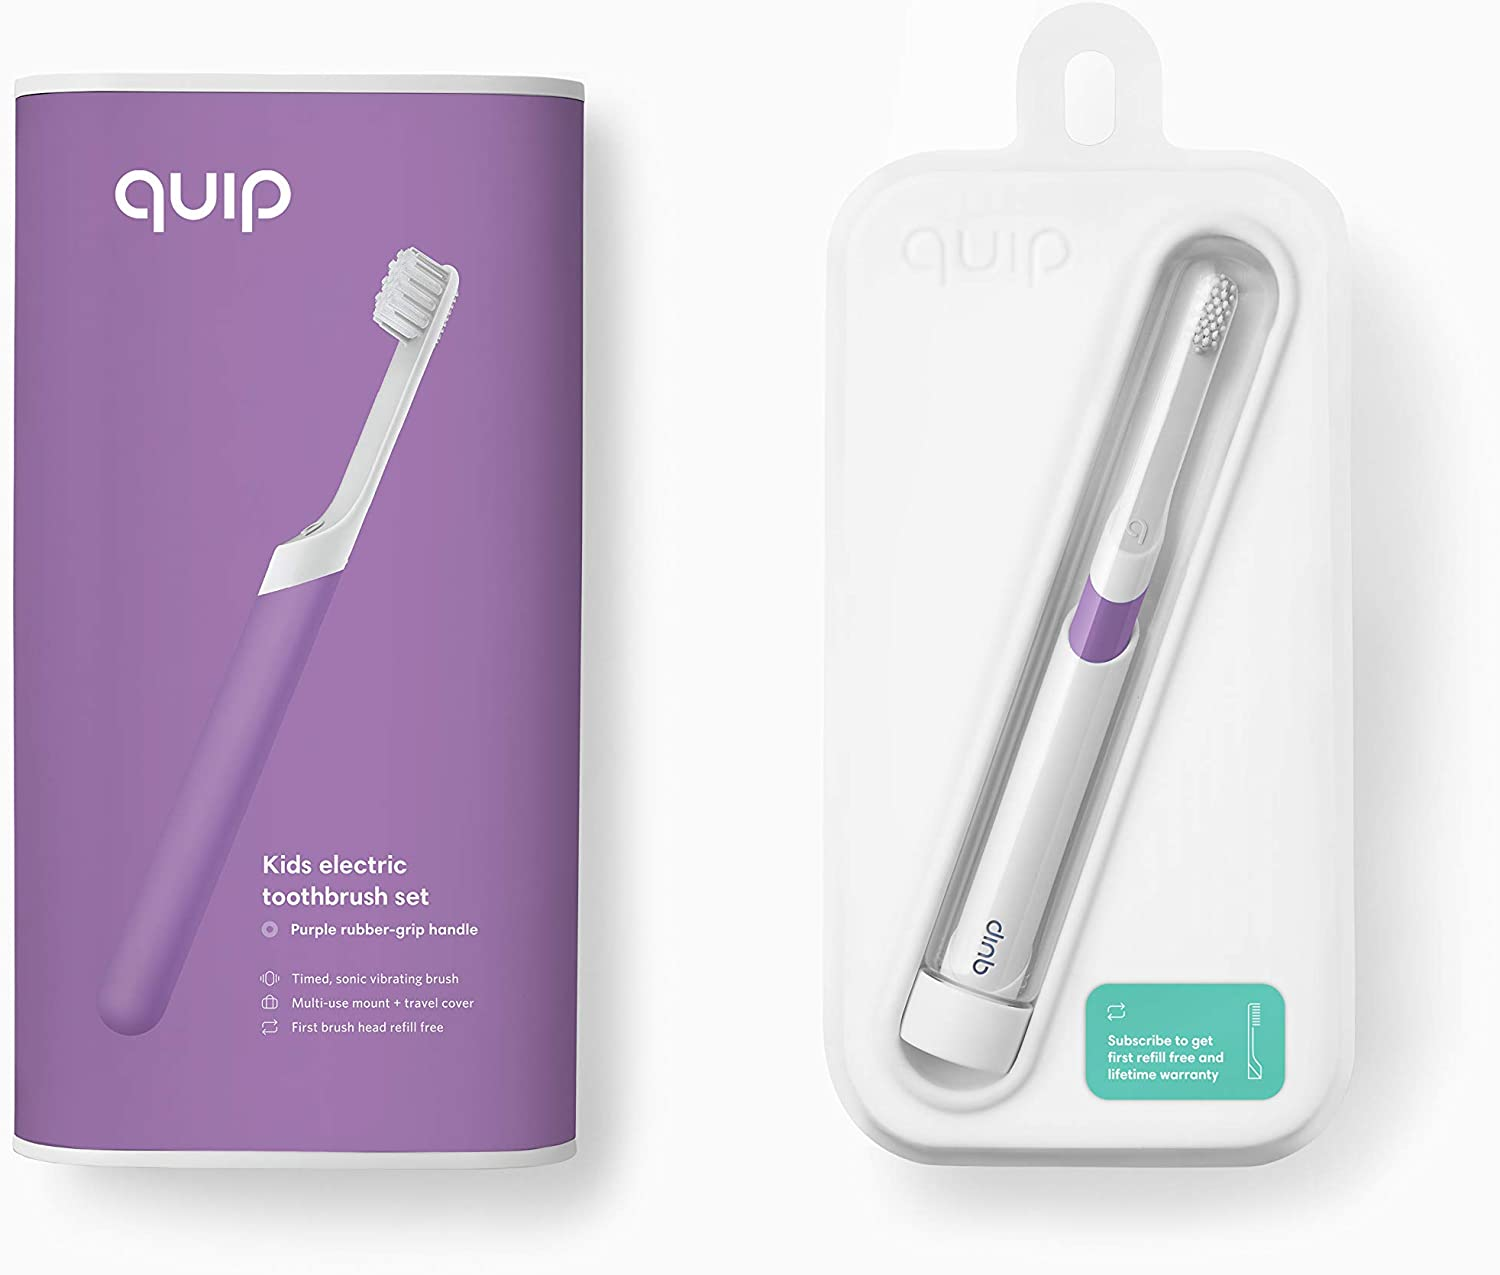 Top 8 Best Electric Toothbrush for Kids (2020 Reviews & Buying Guide) 3